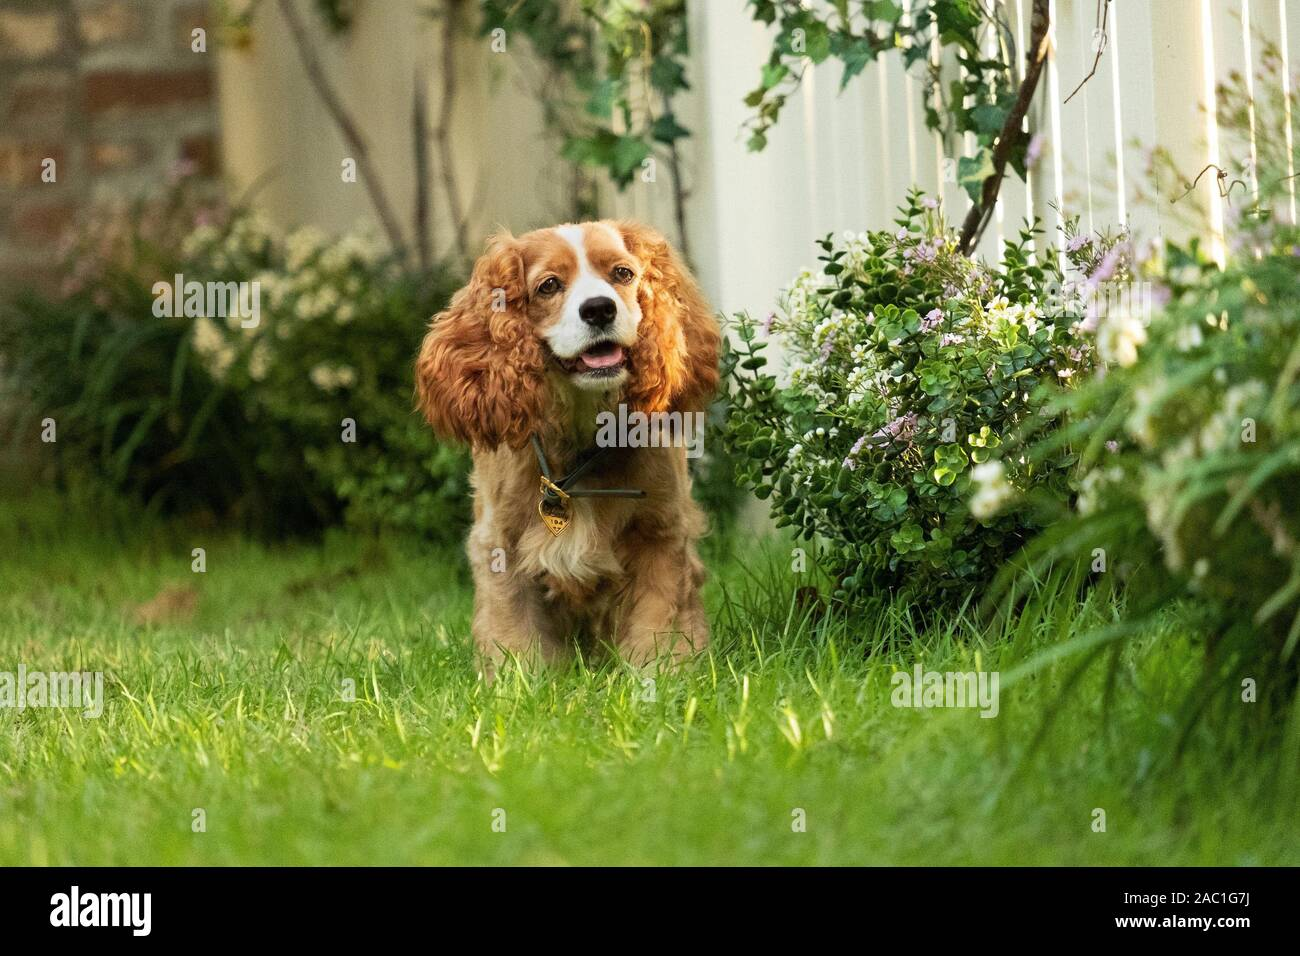 Lady Tramp High Resolution Stock Photography And Images Alamy